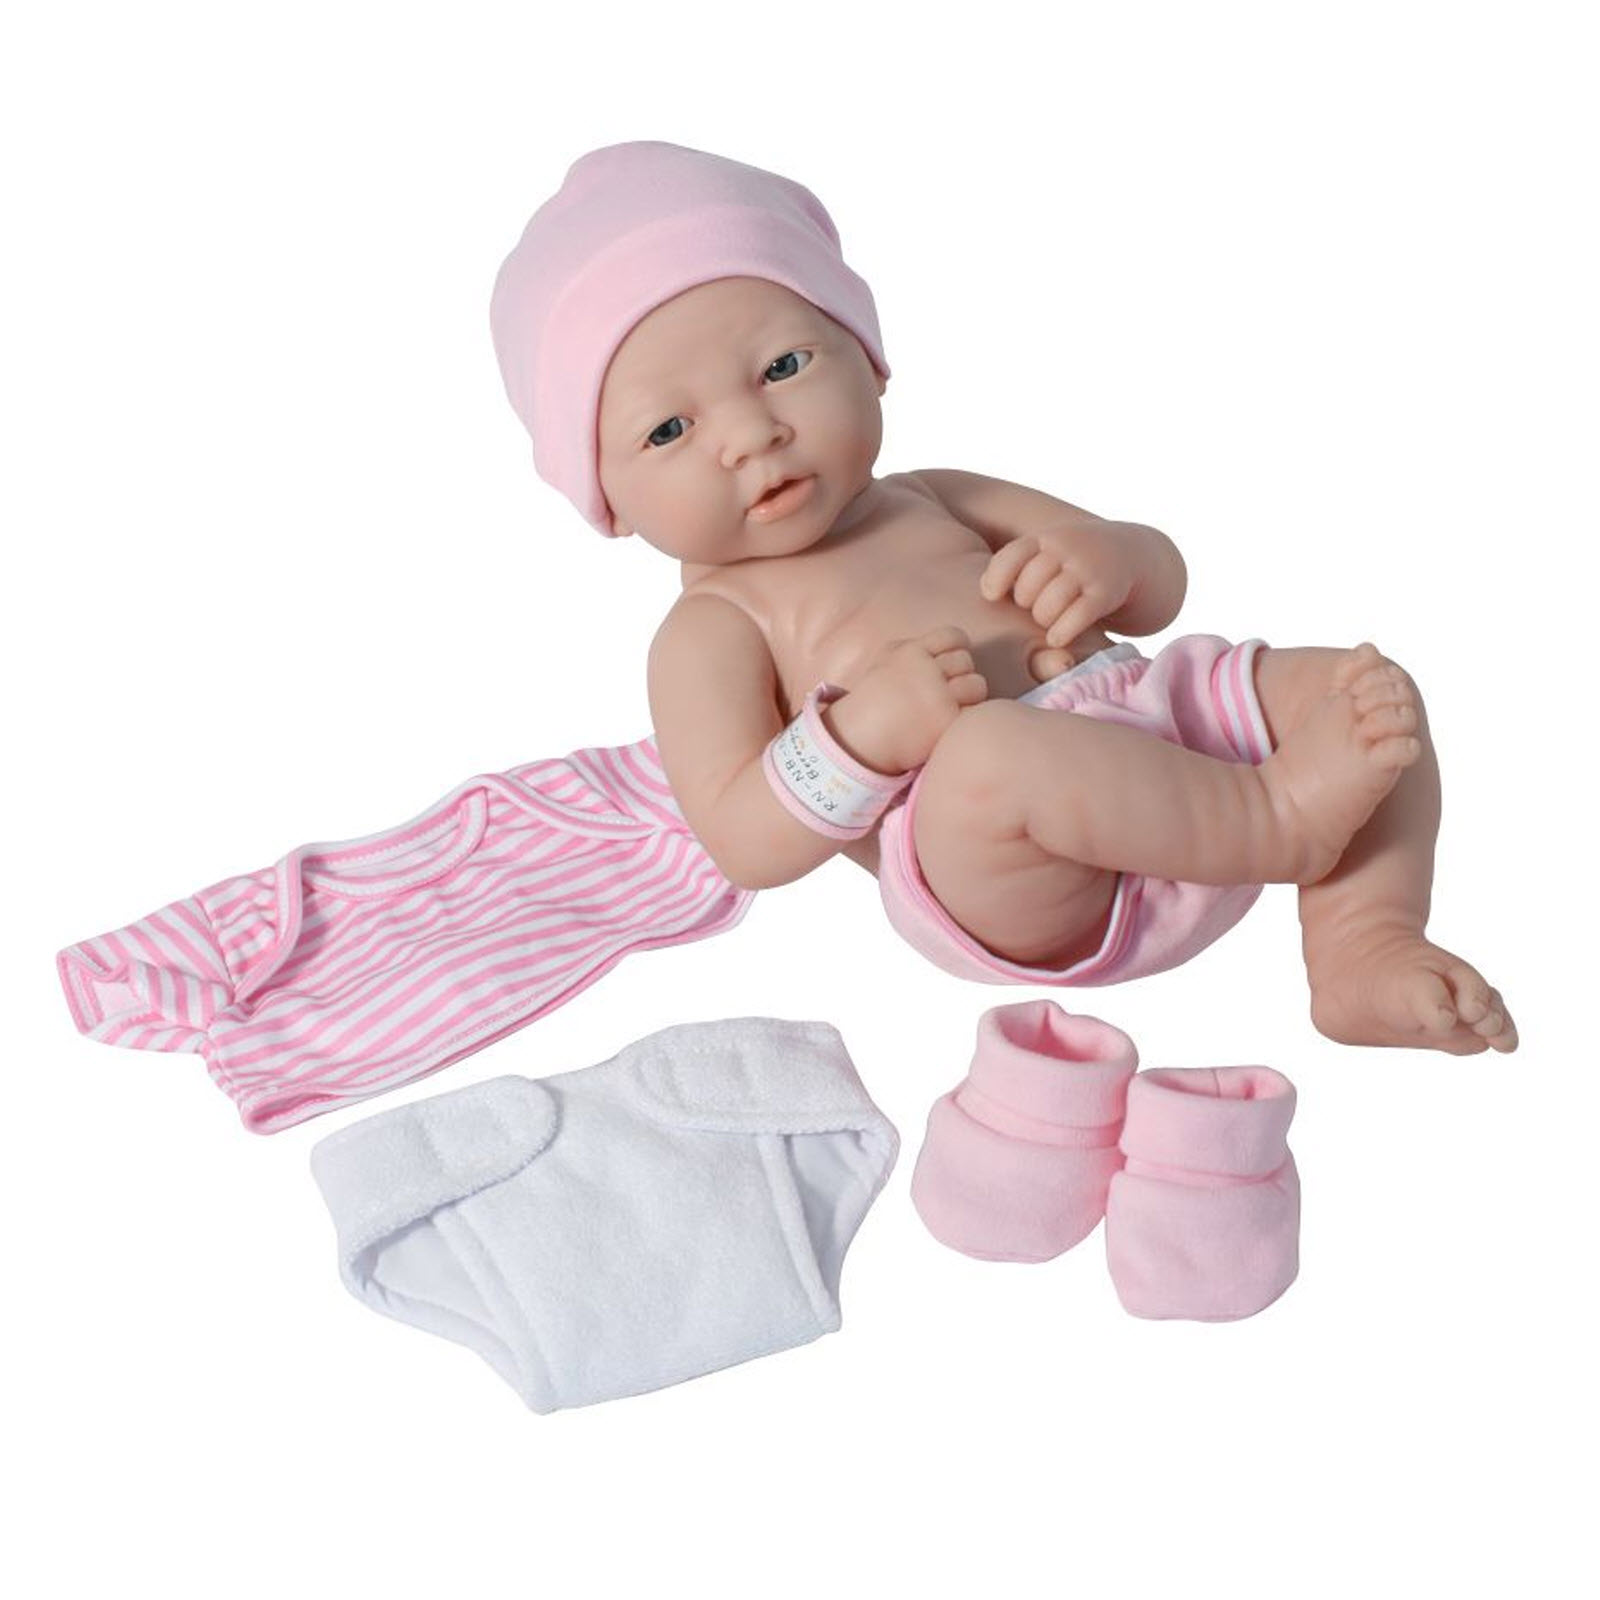 JC Toys 14'' La Newborn Doll Gift Set